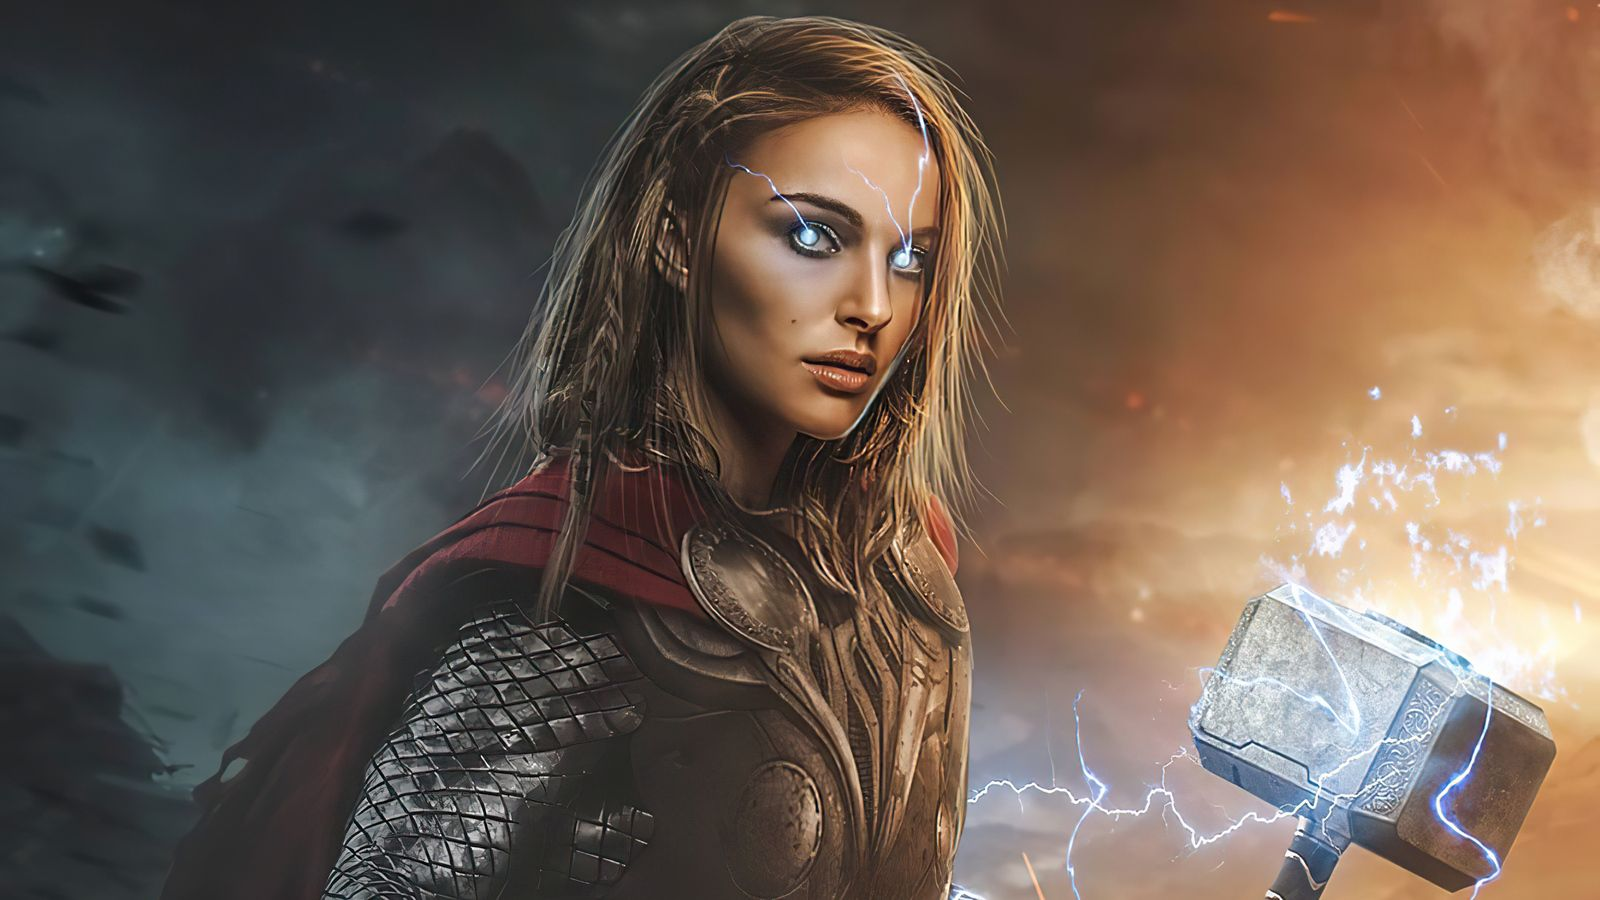 1600x900 Lady Thor Love And Thunder 4k 2021 1600x900 Resolution HD 4k Wallpapers, Image, Backgrounds, Photos and Pictures